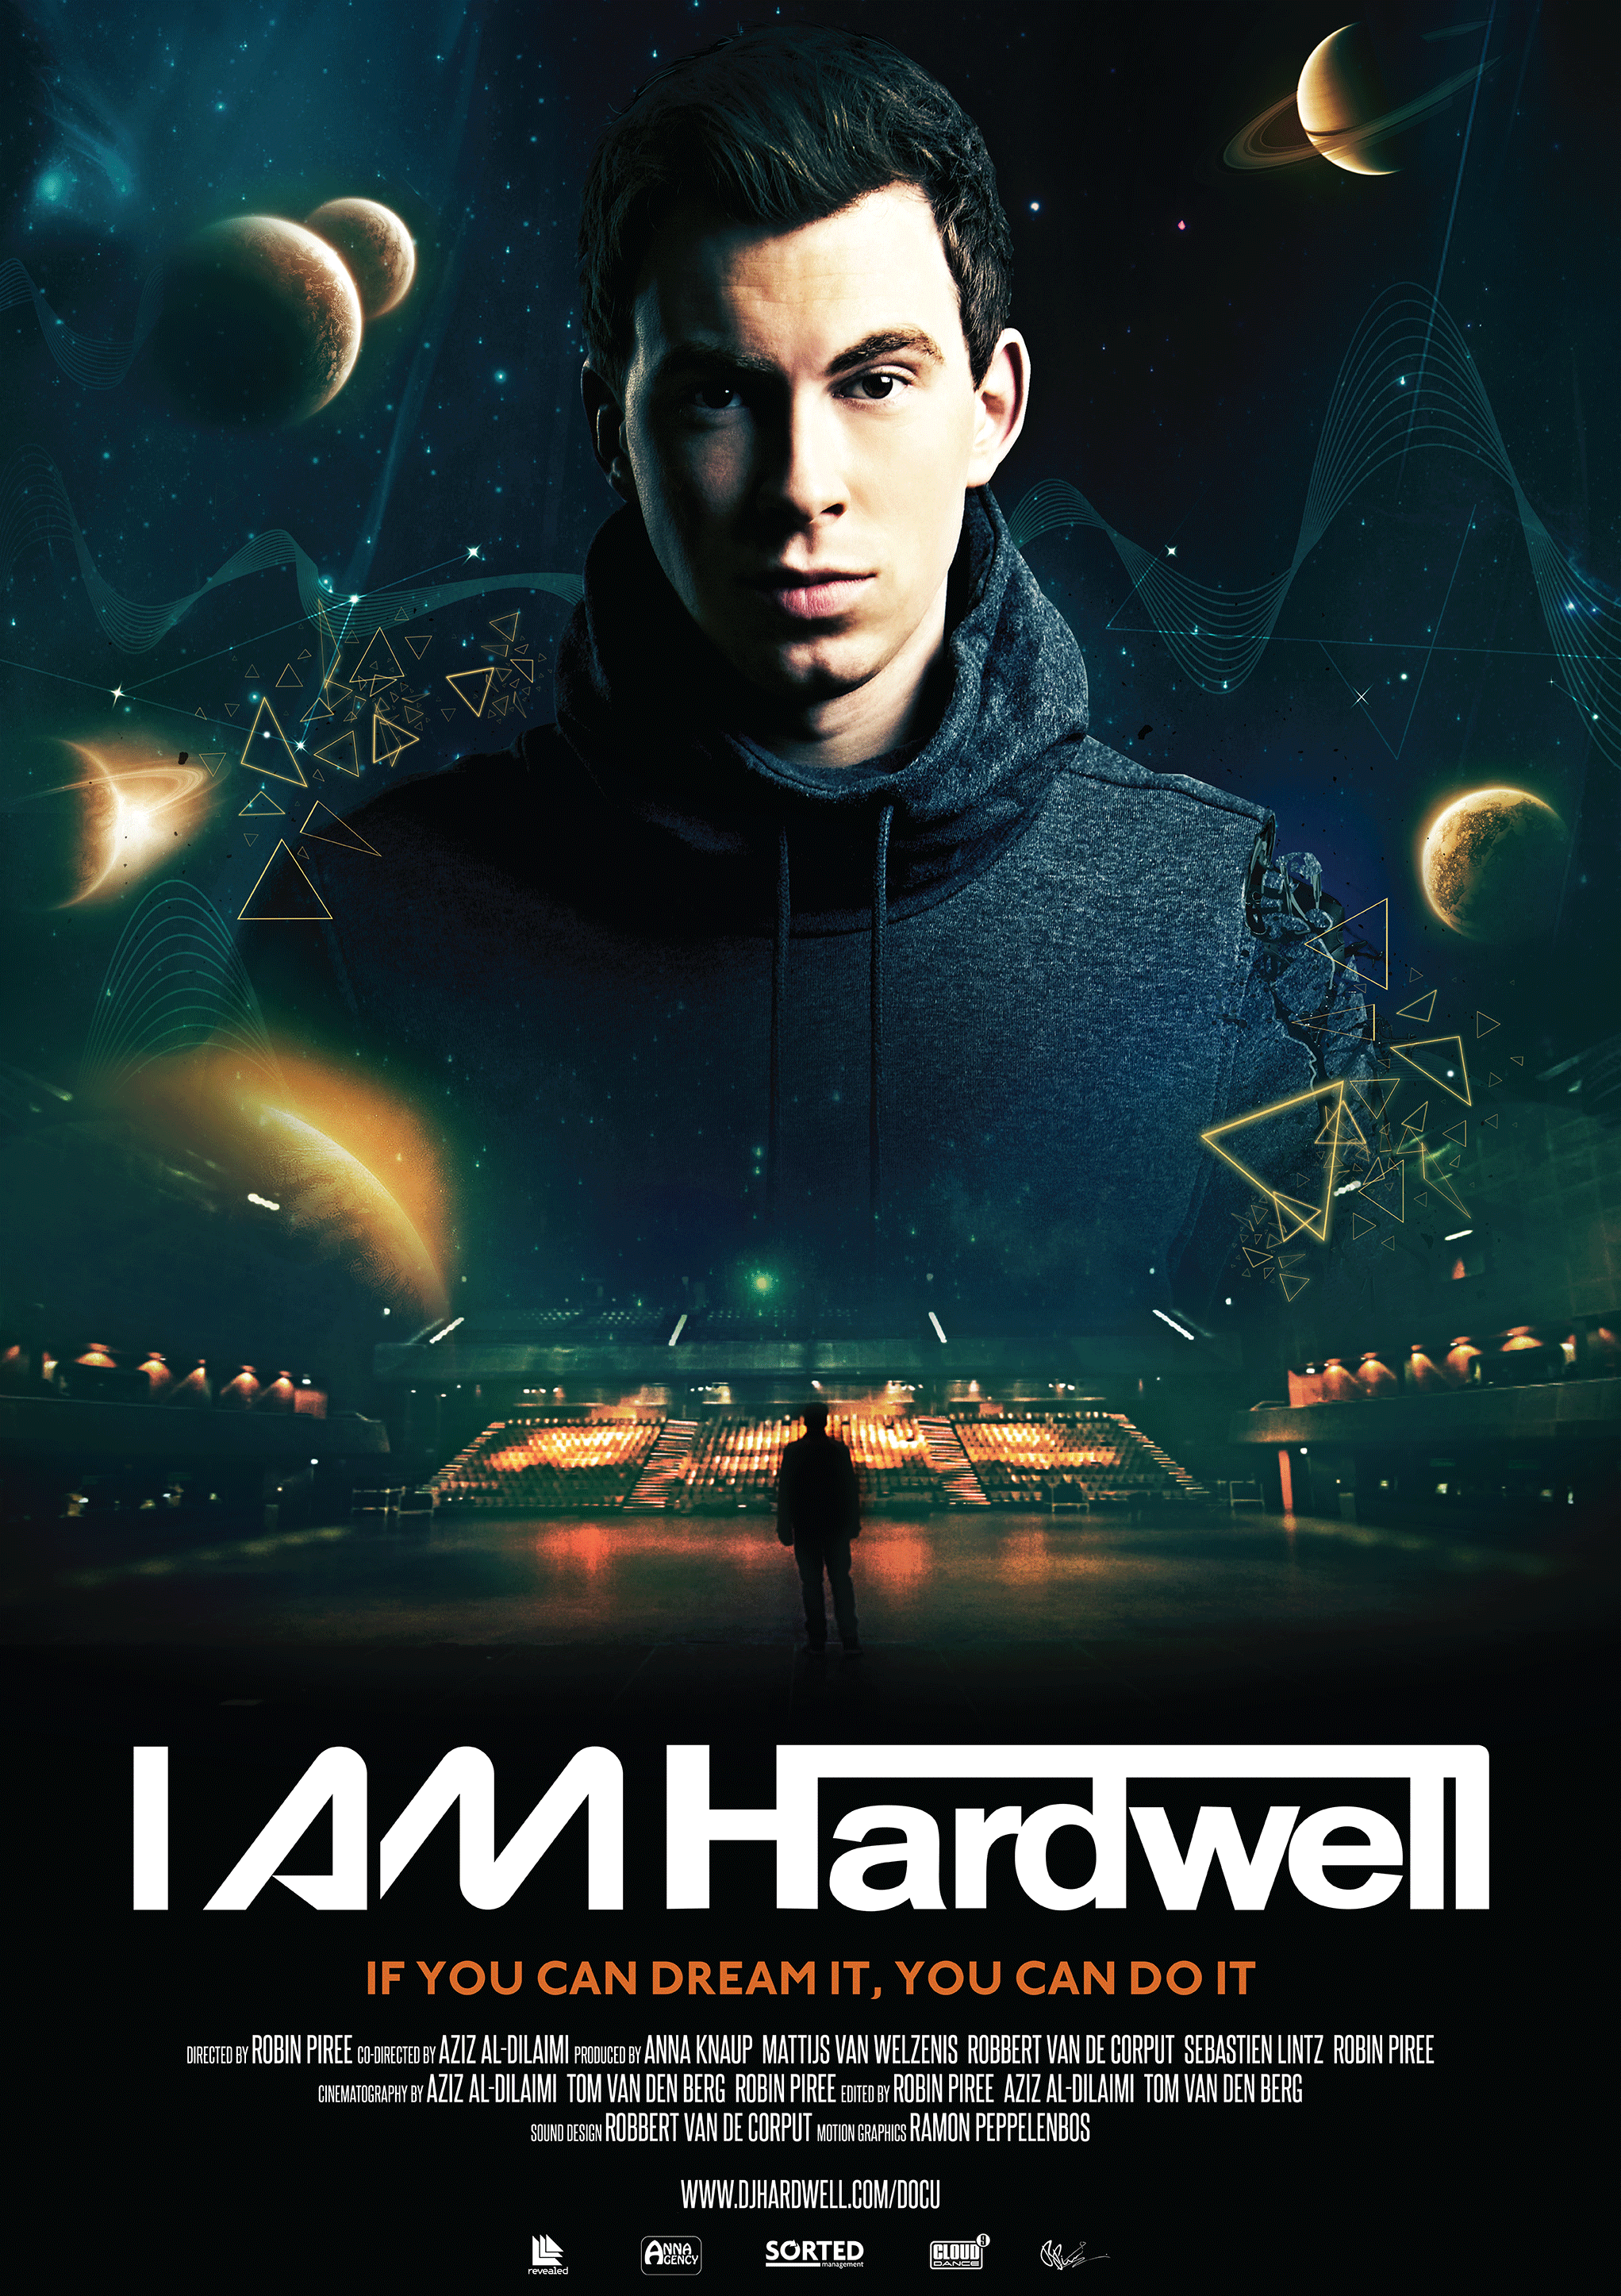 I am Hardwell Documentary (2013)